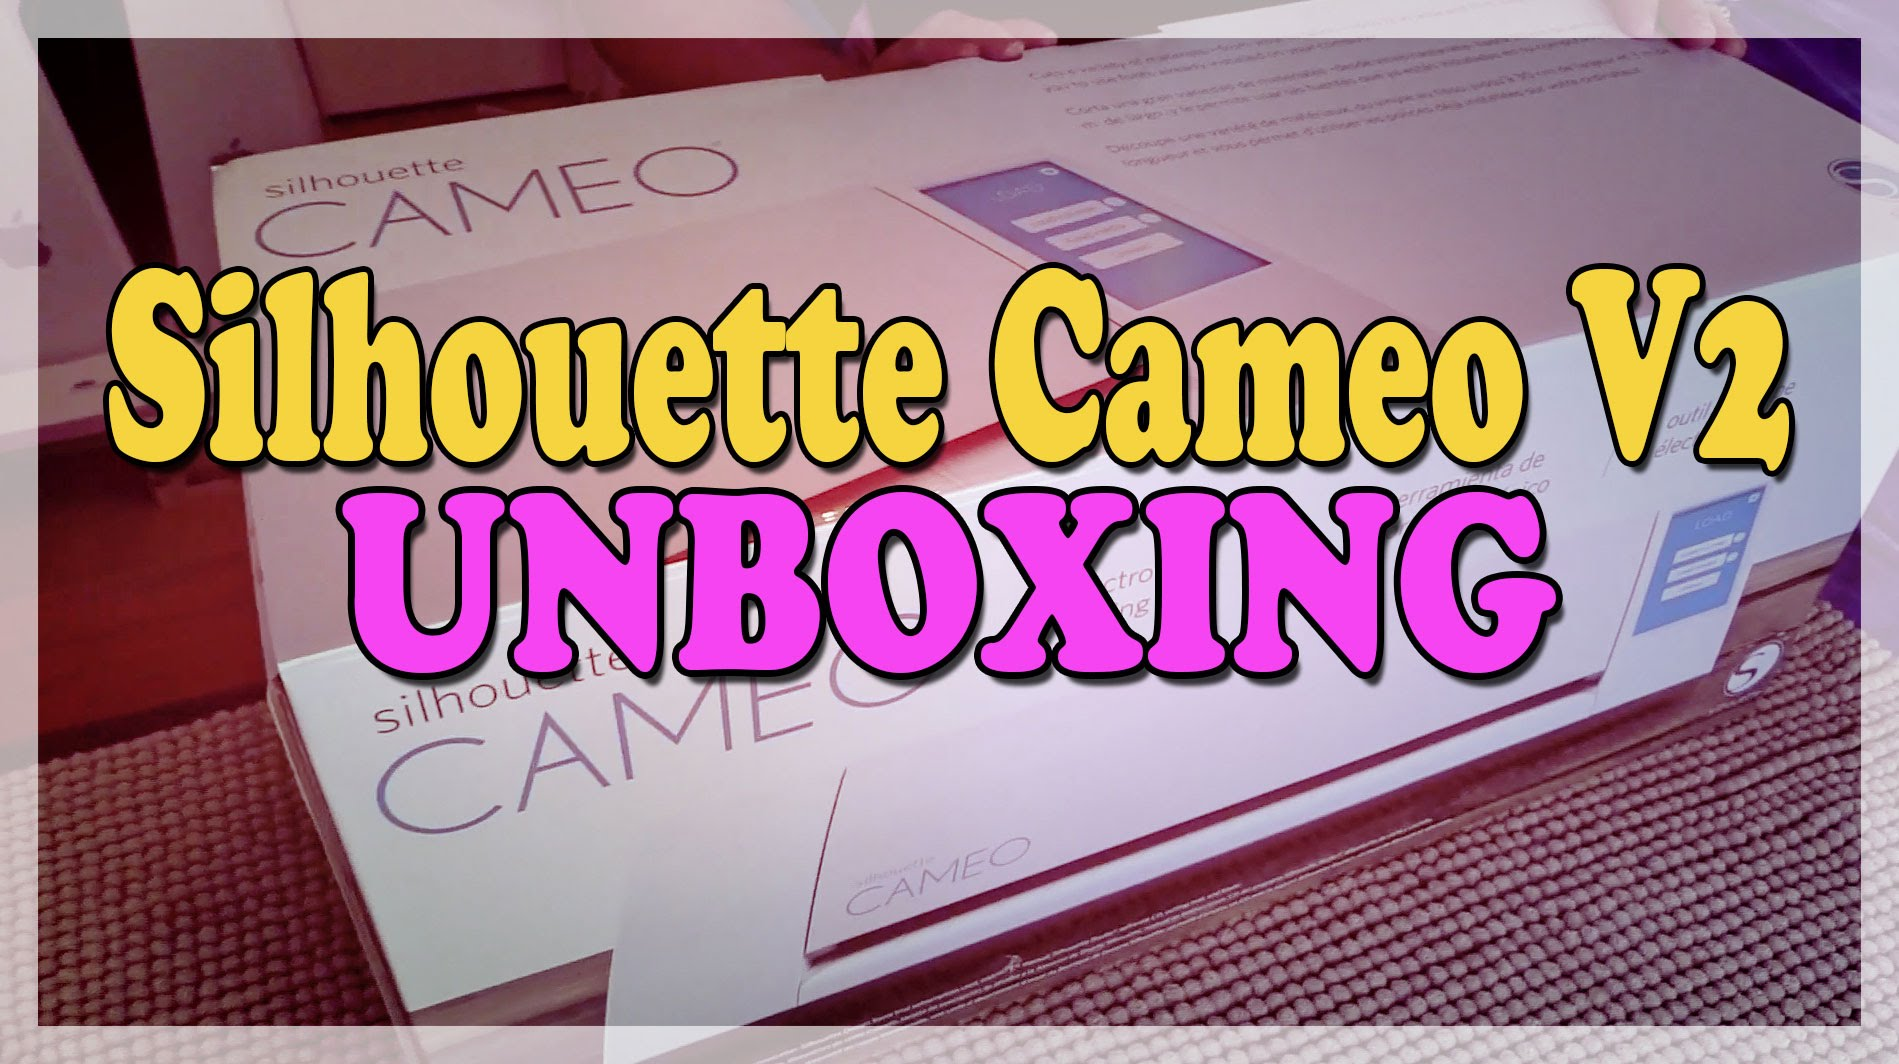 Silhouette Cameo V2 Unboxing